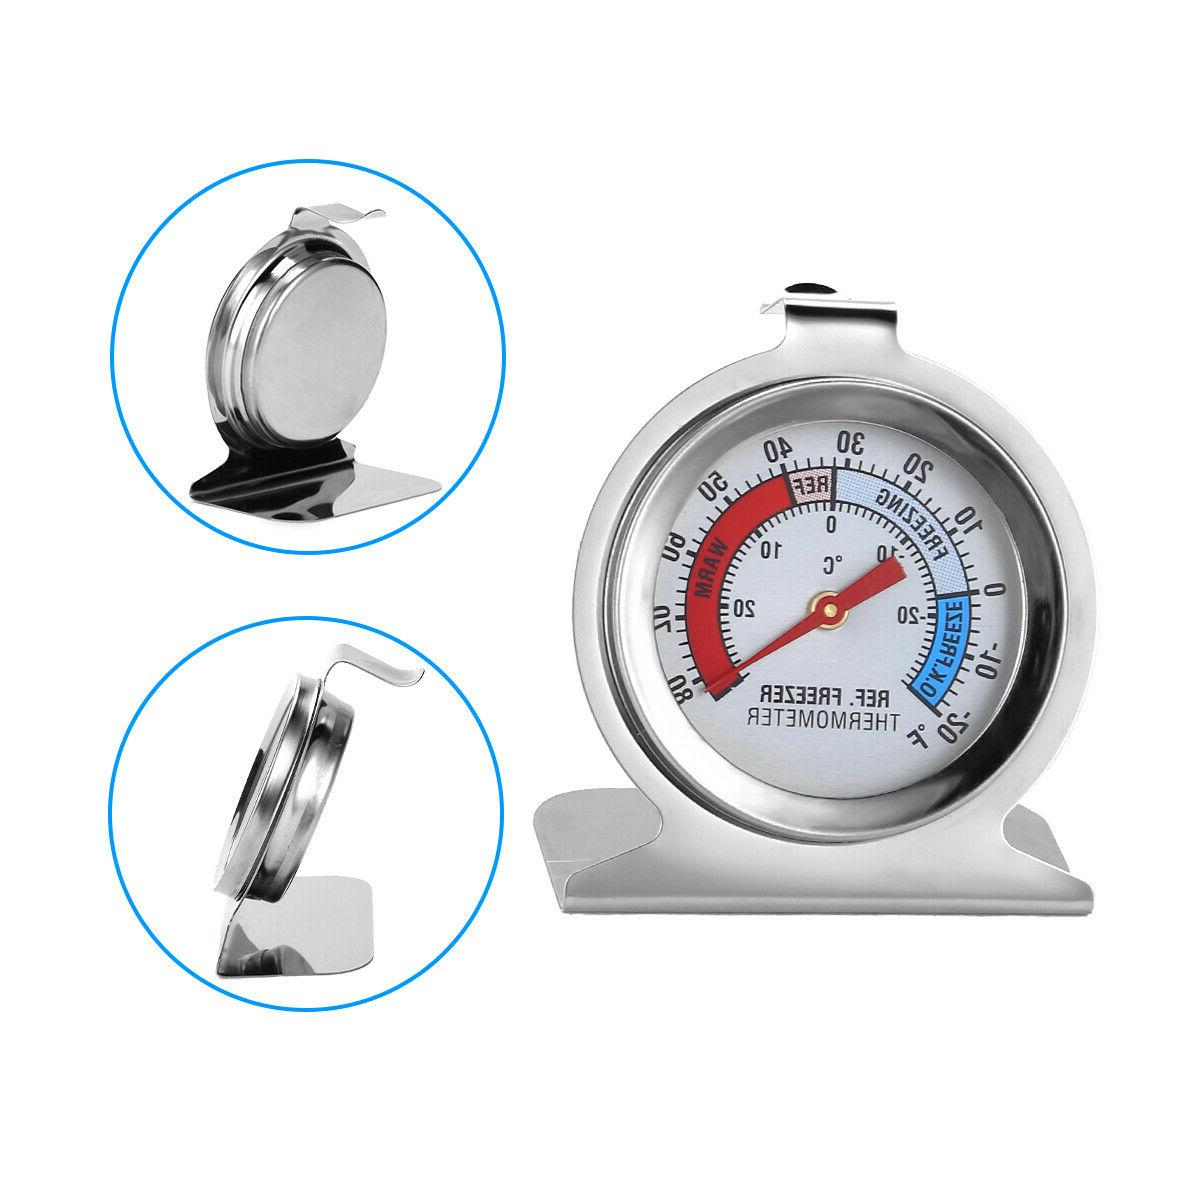 Stainless Steel Refrigerator Fridge Thermometer